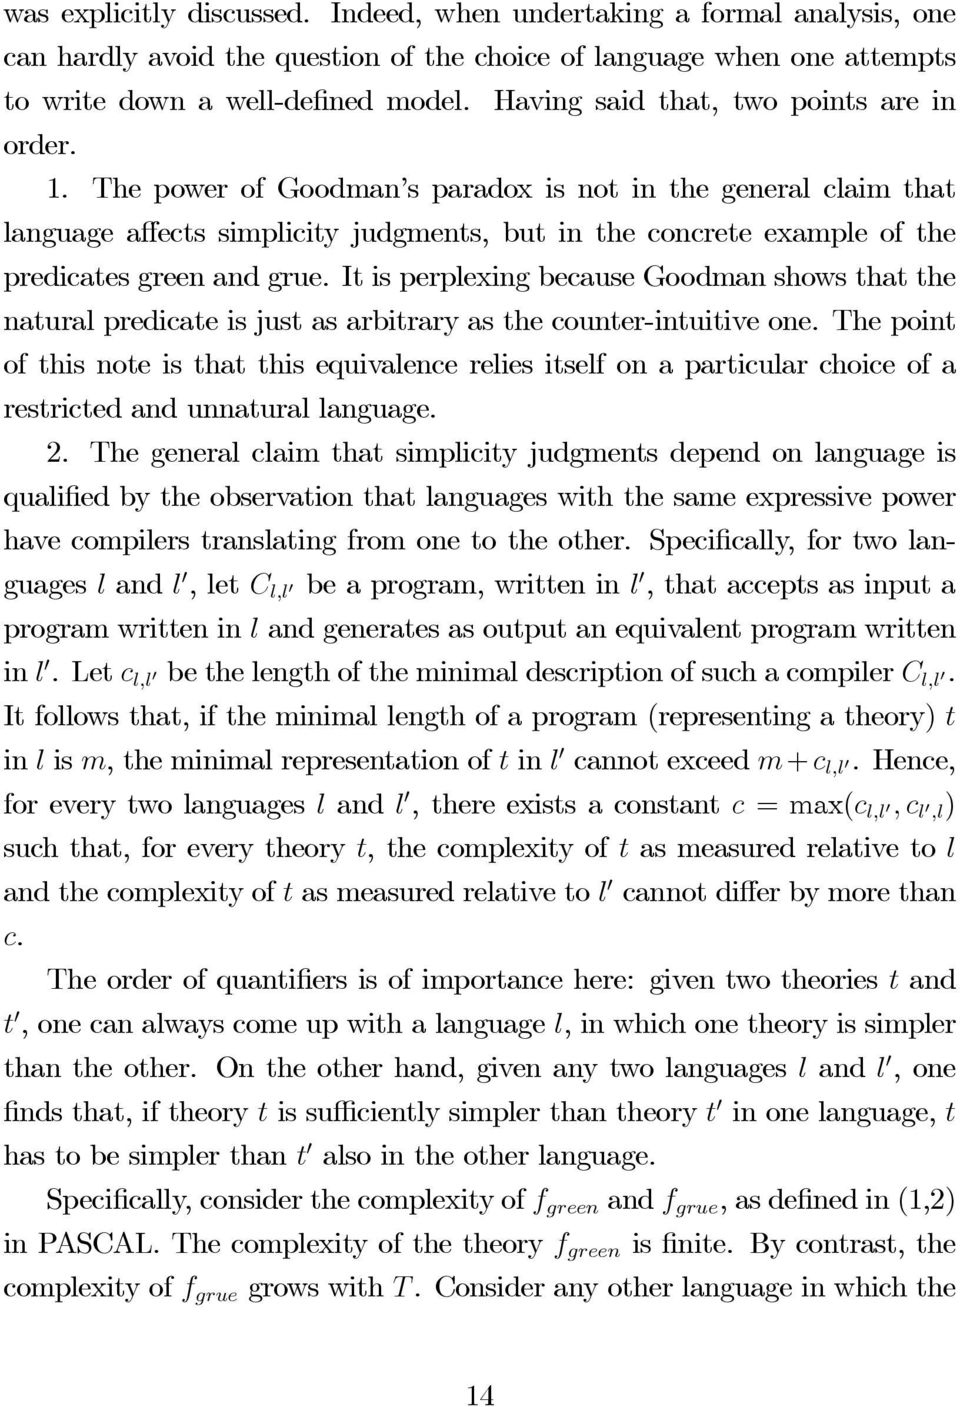 The power of Goodman s paradox is not in the general claim that language affects simplicity judgments, but in the concrete example of the predicates green and grue.